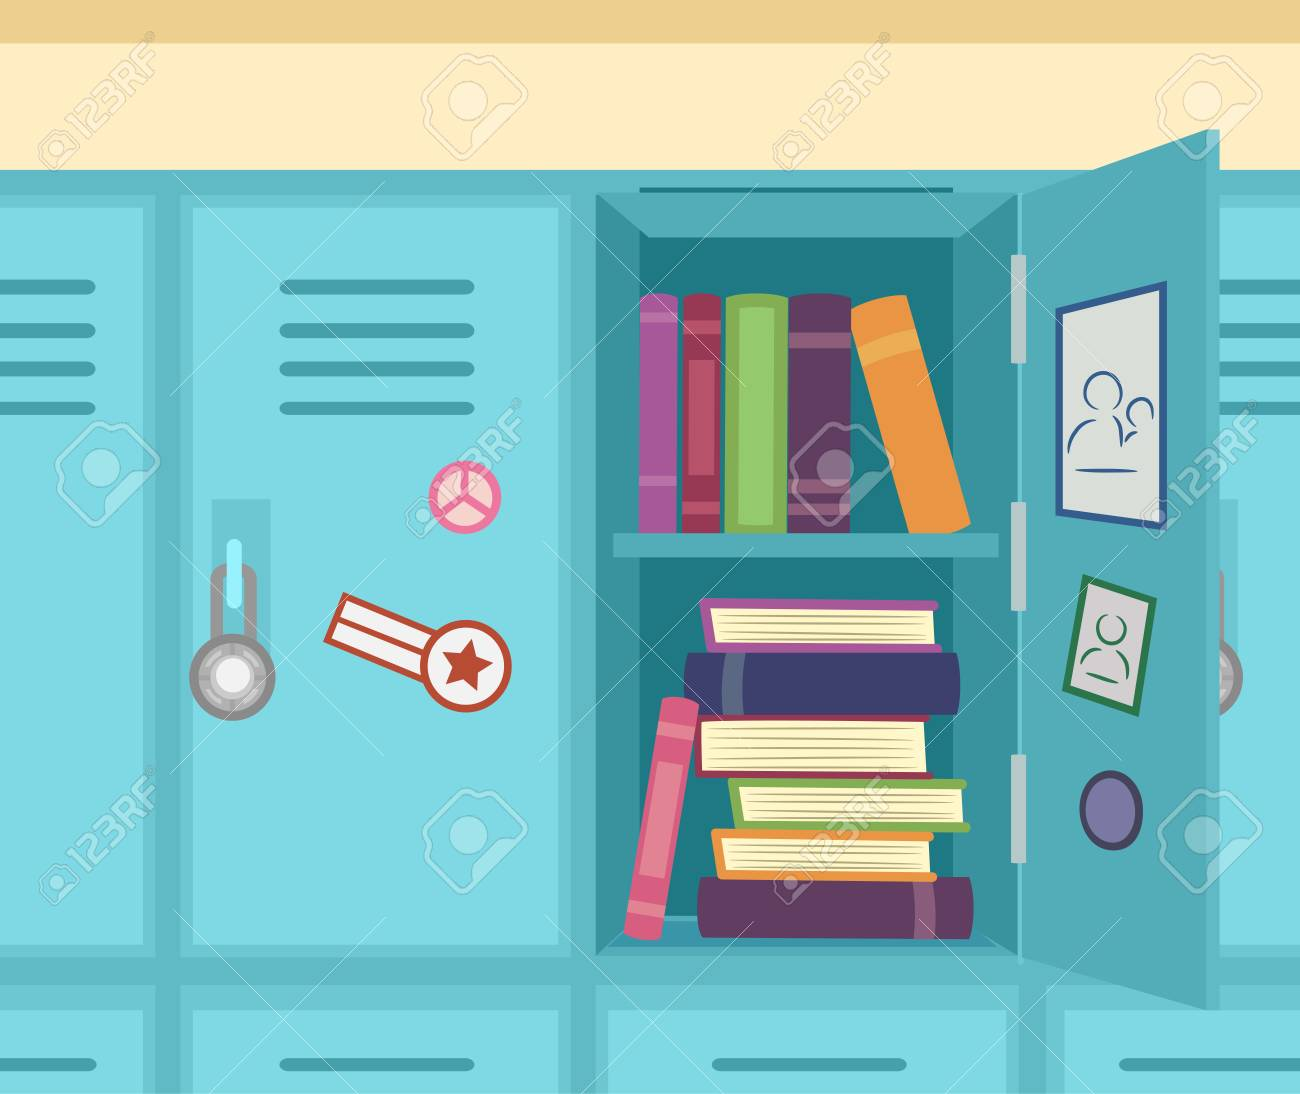 colorful illustration featuring an open school locker showing stacks of  books stock illustration - 83242354